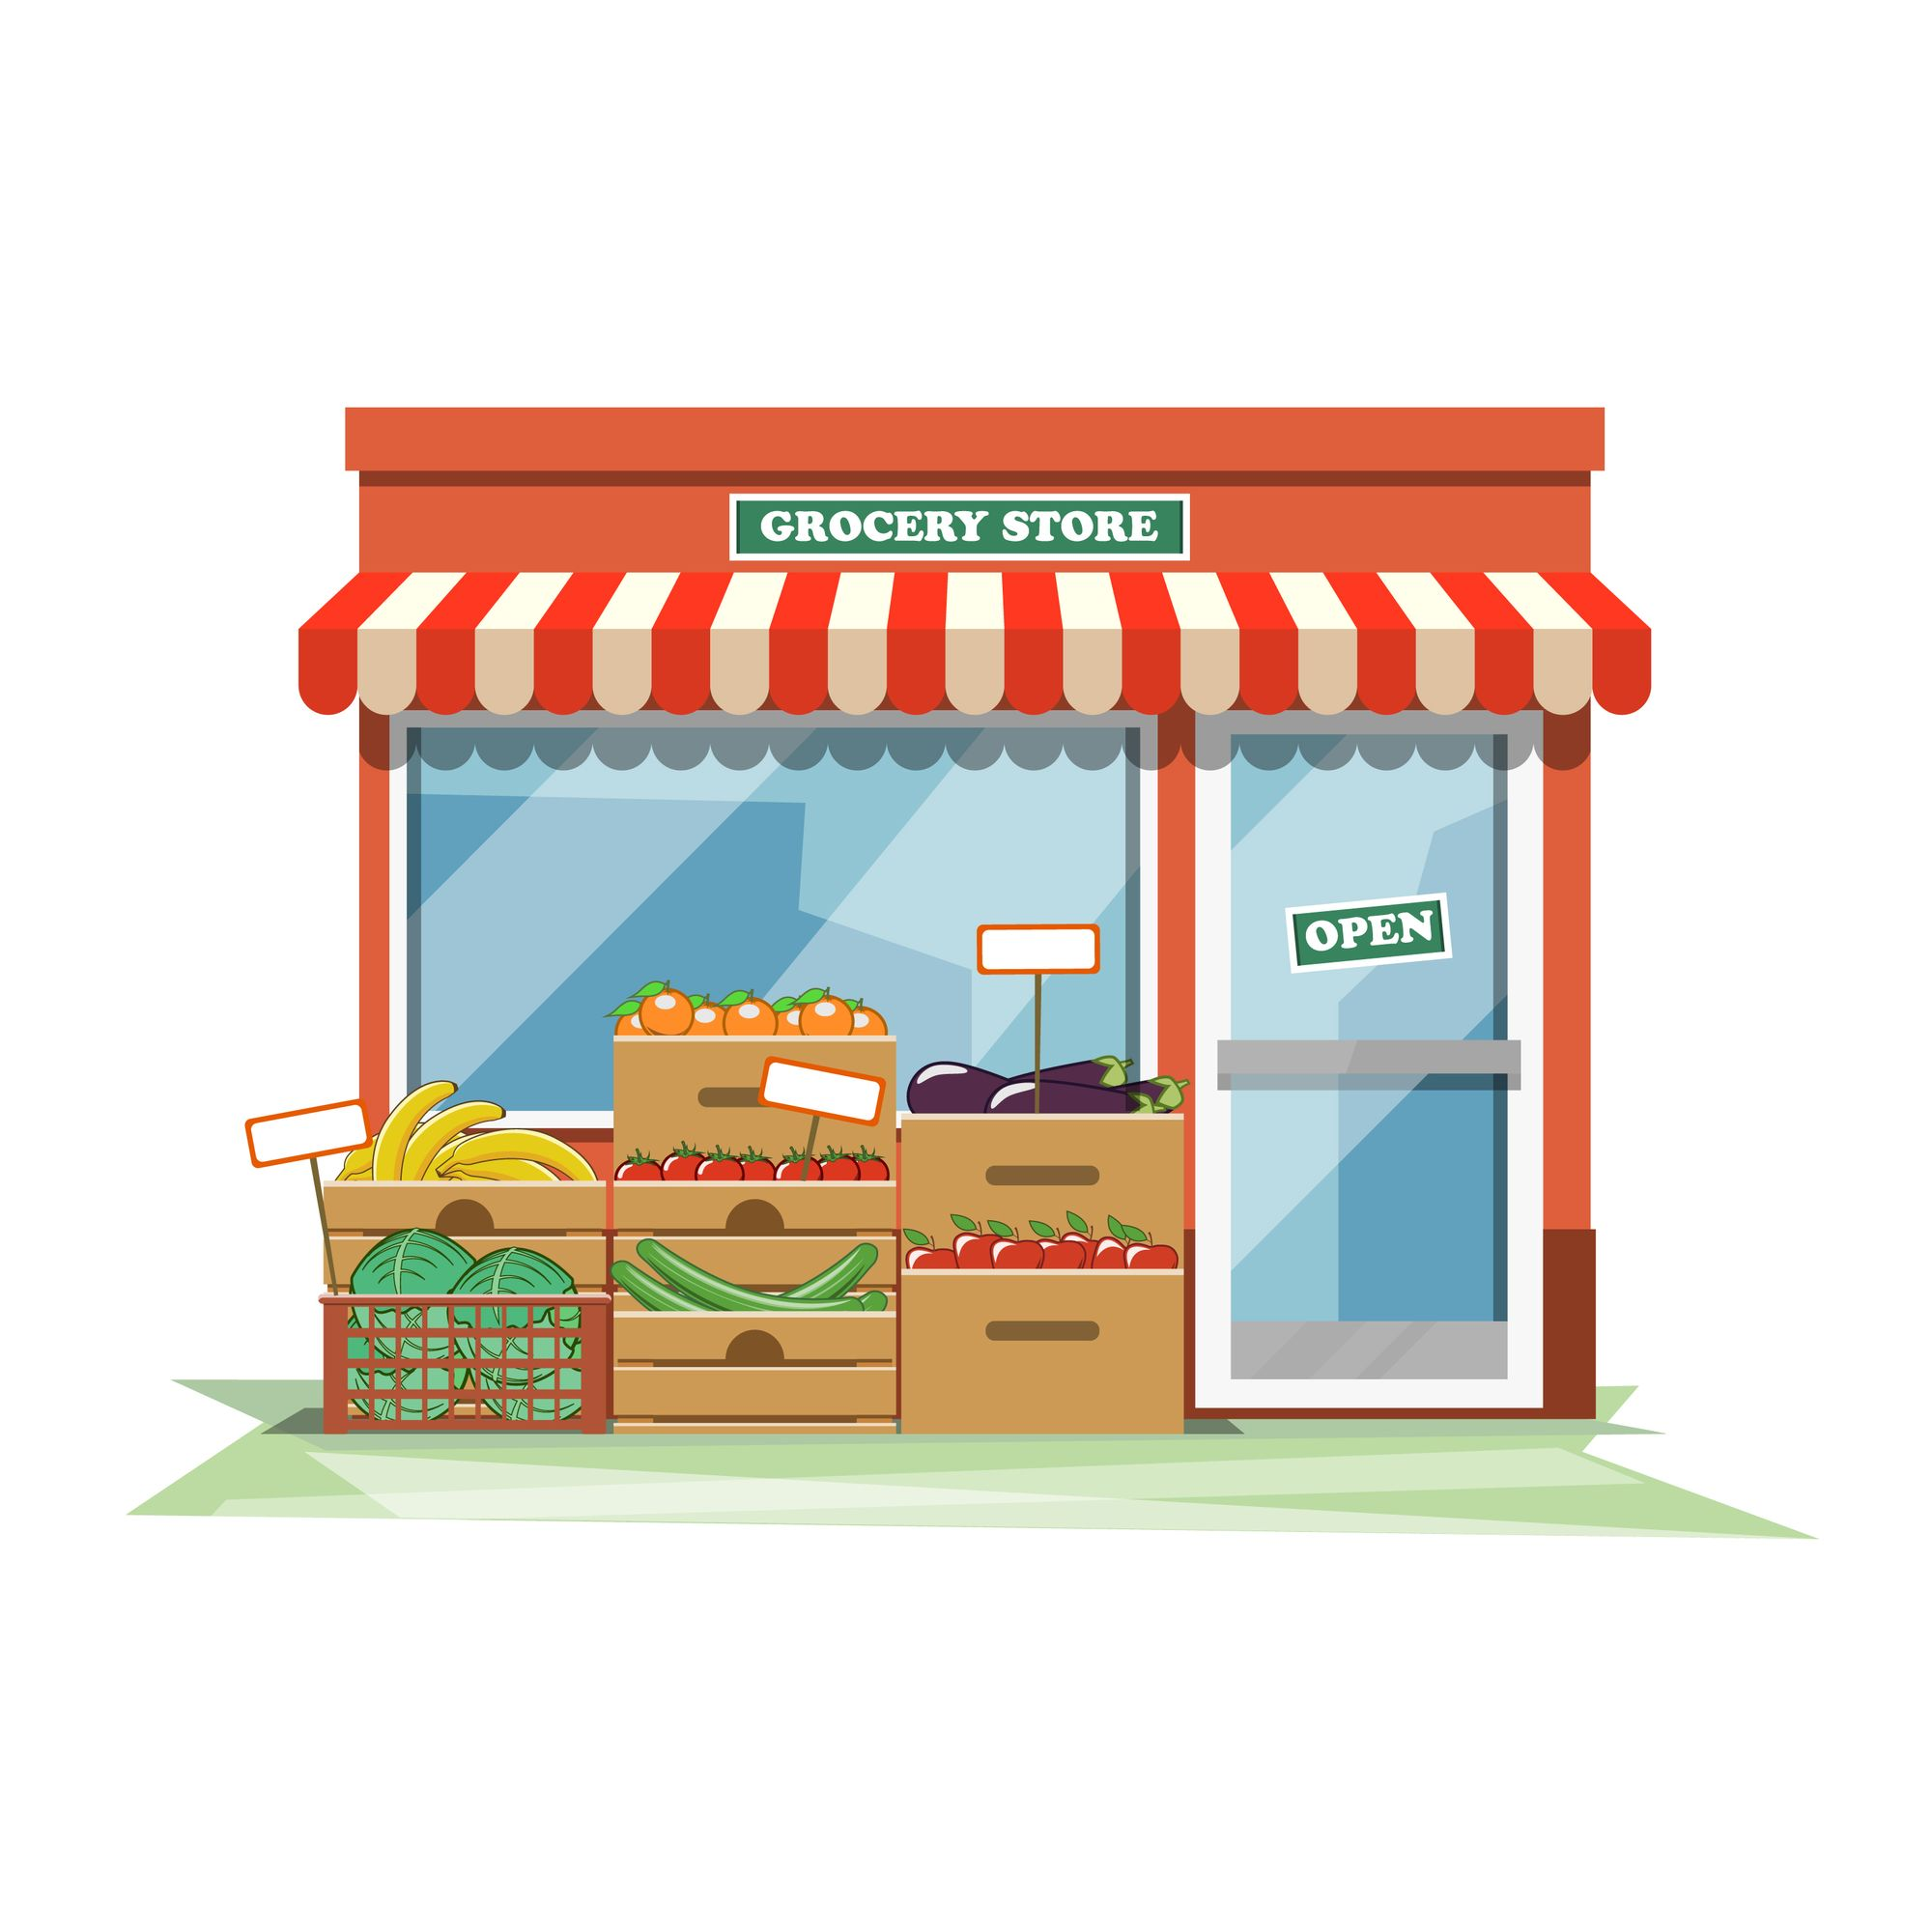 How to start a grocery store? Business plan for starting a Grocery Shop